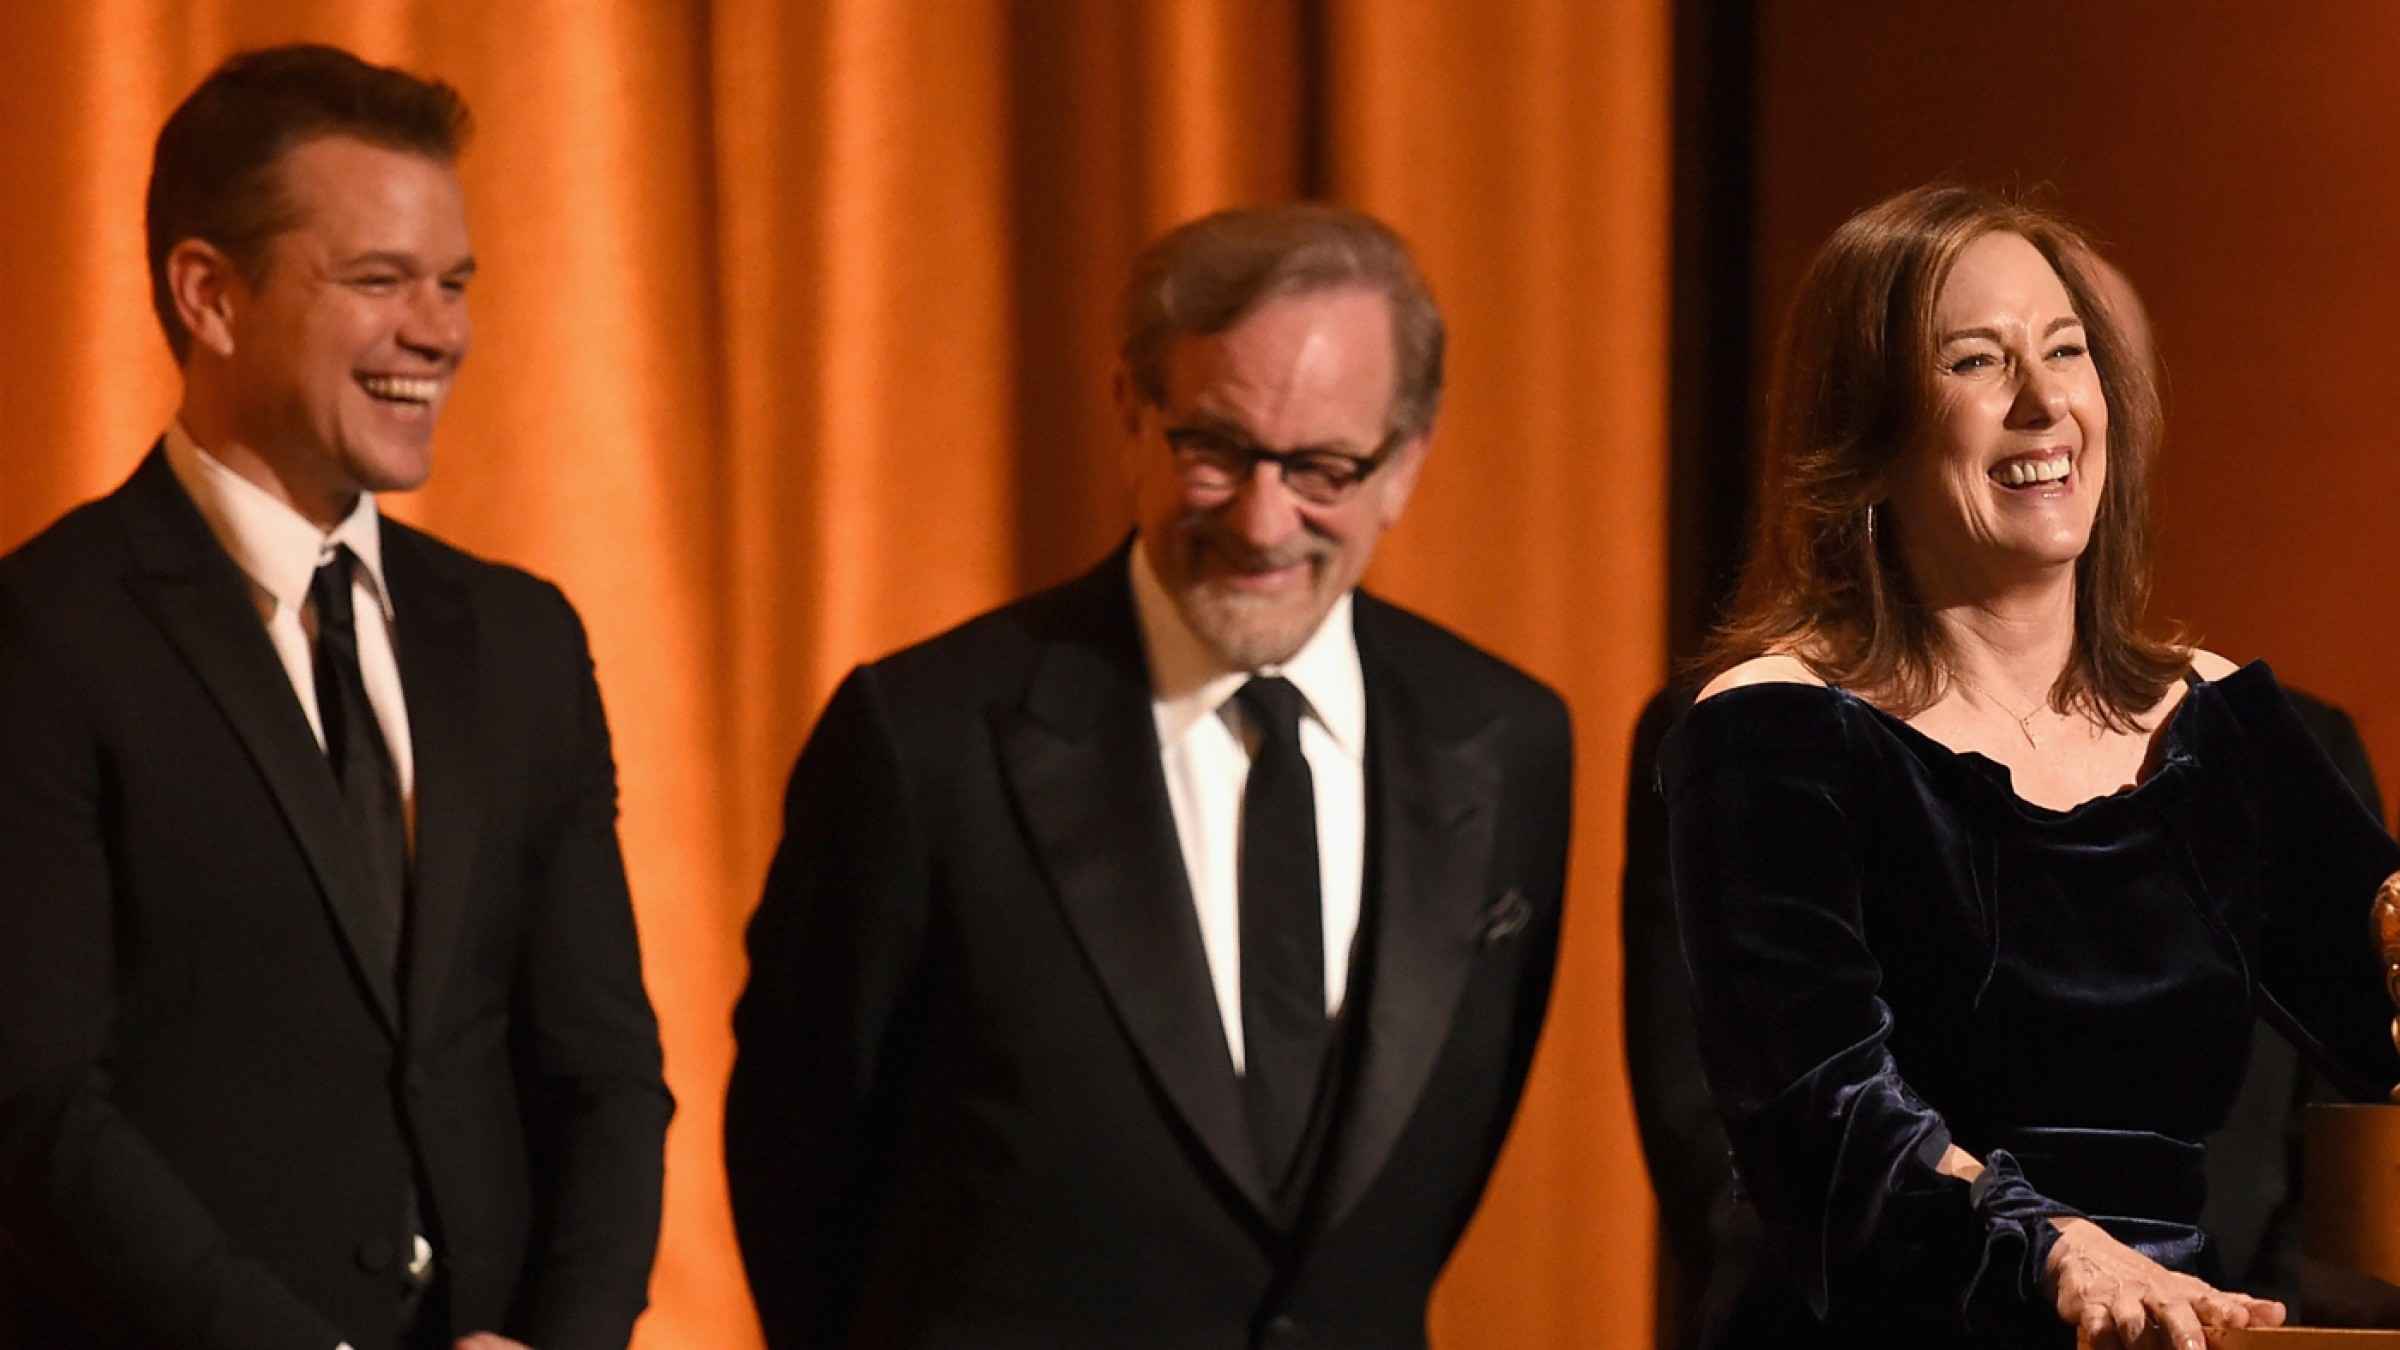 Watch: The 10th Annual Governors Awards